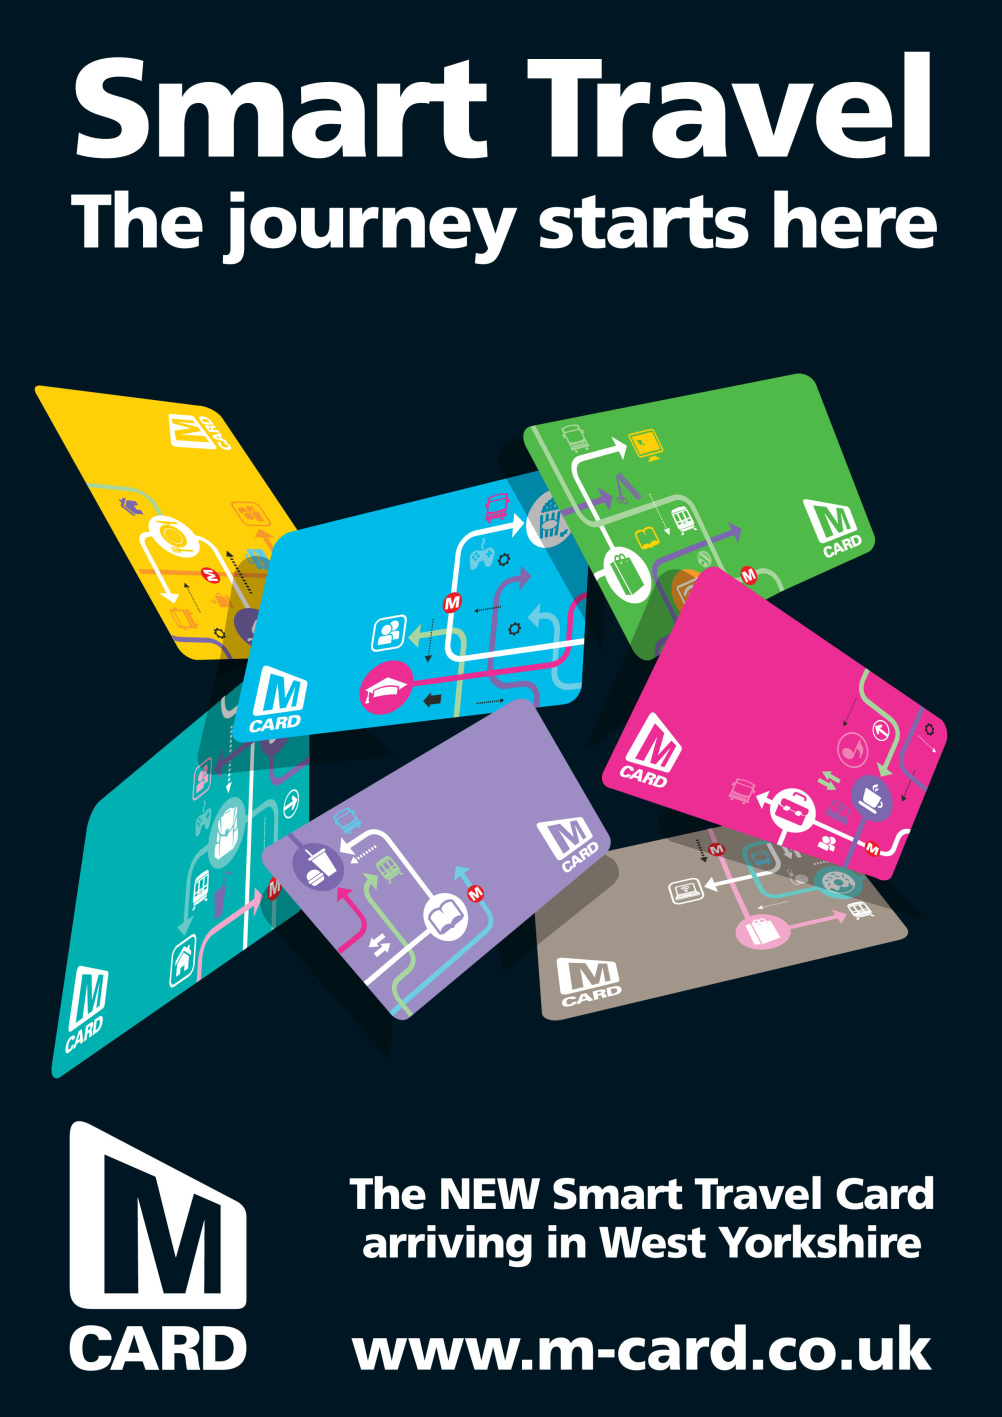 Smart Travel The journey starts here